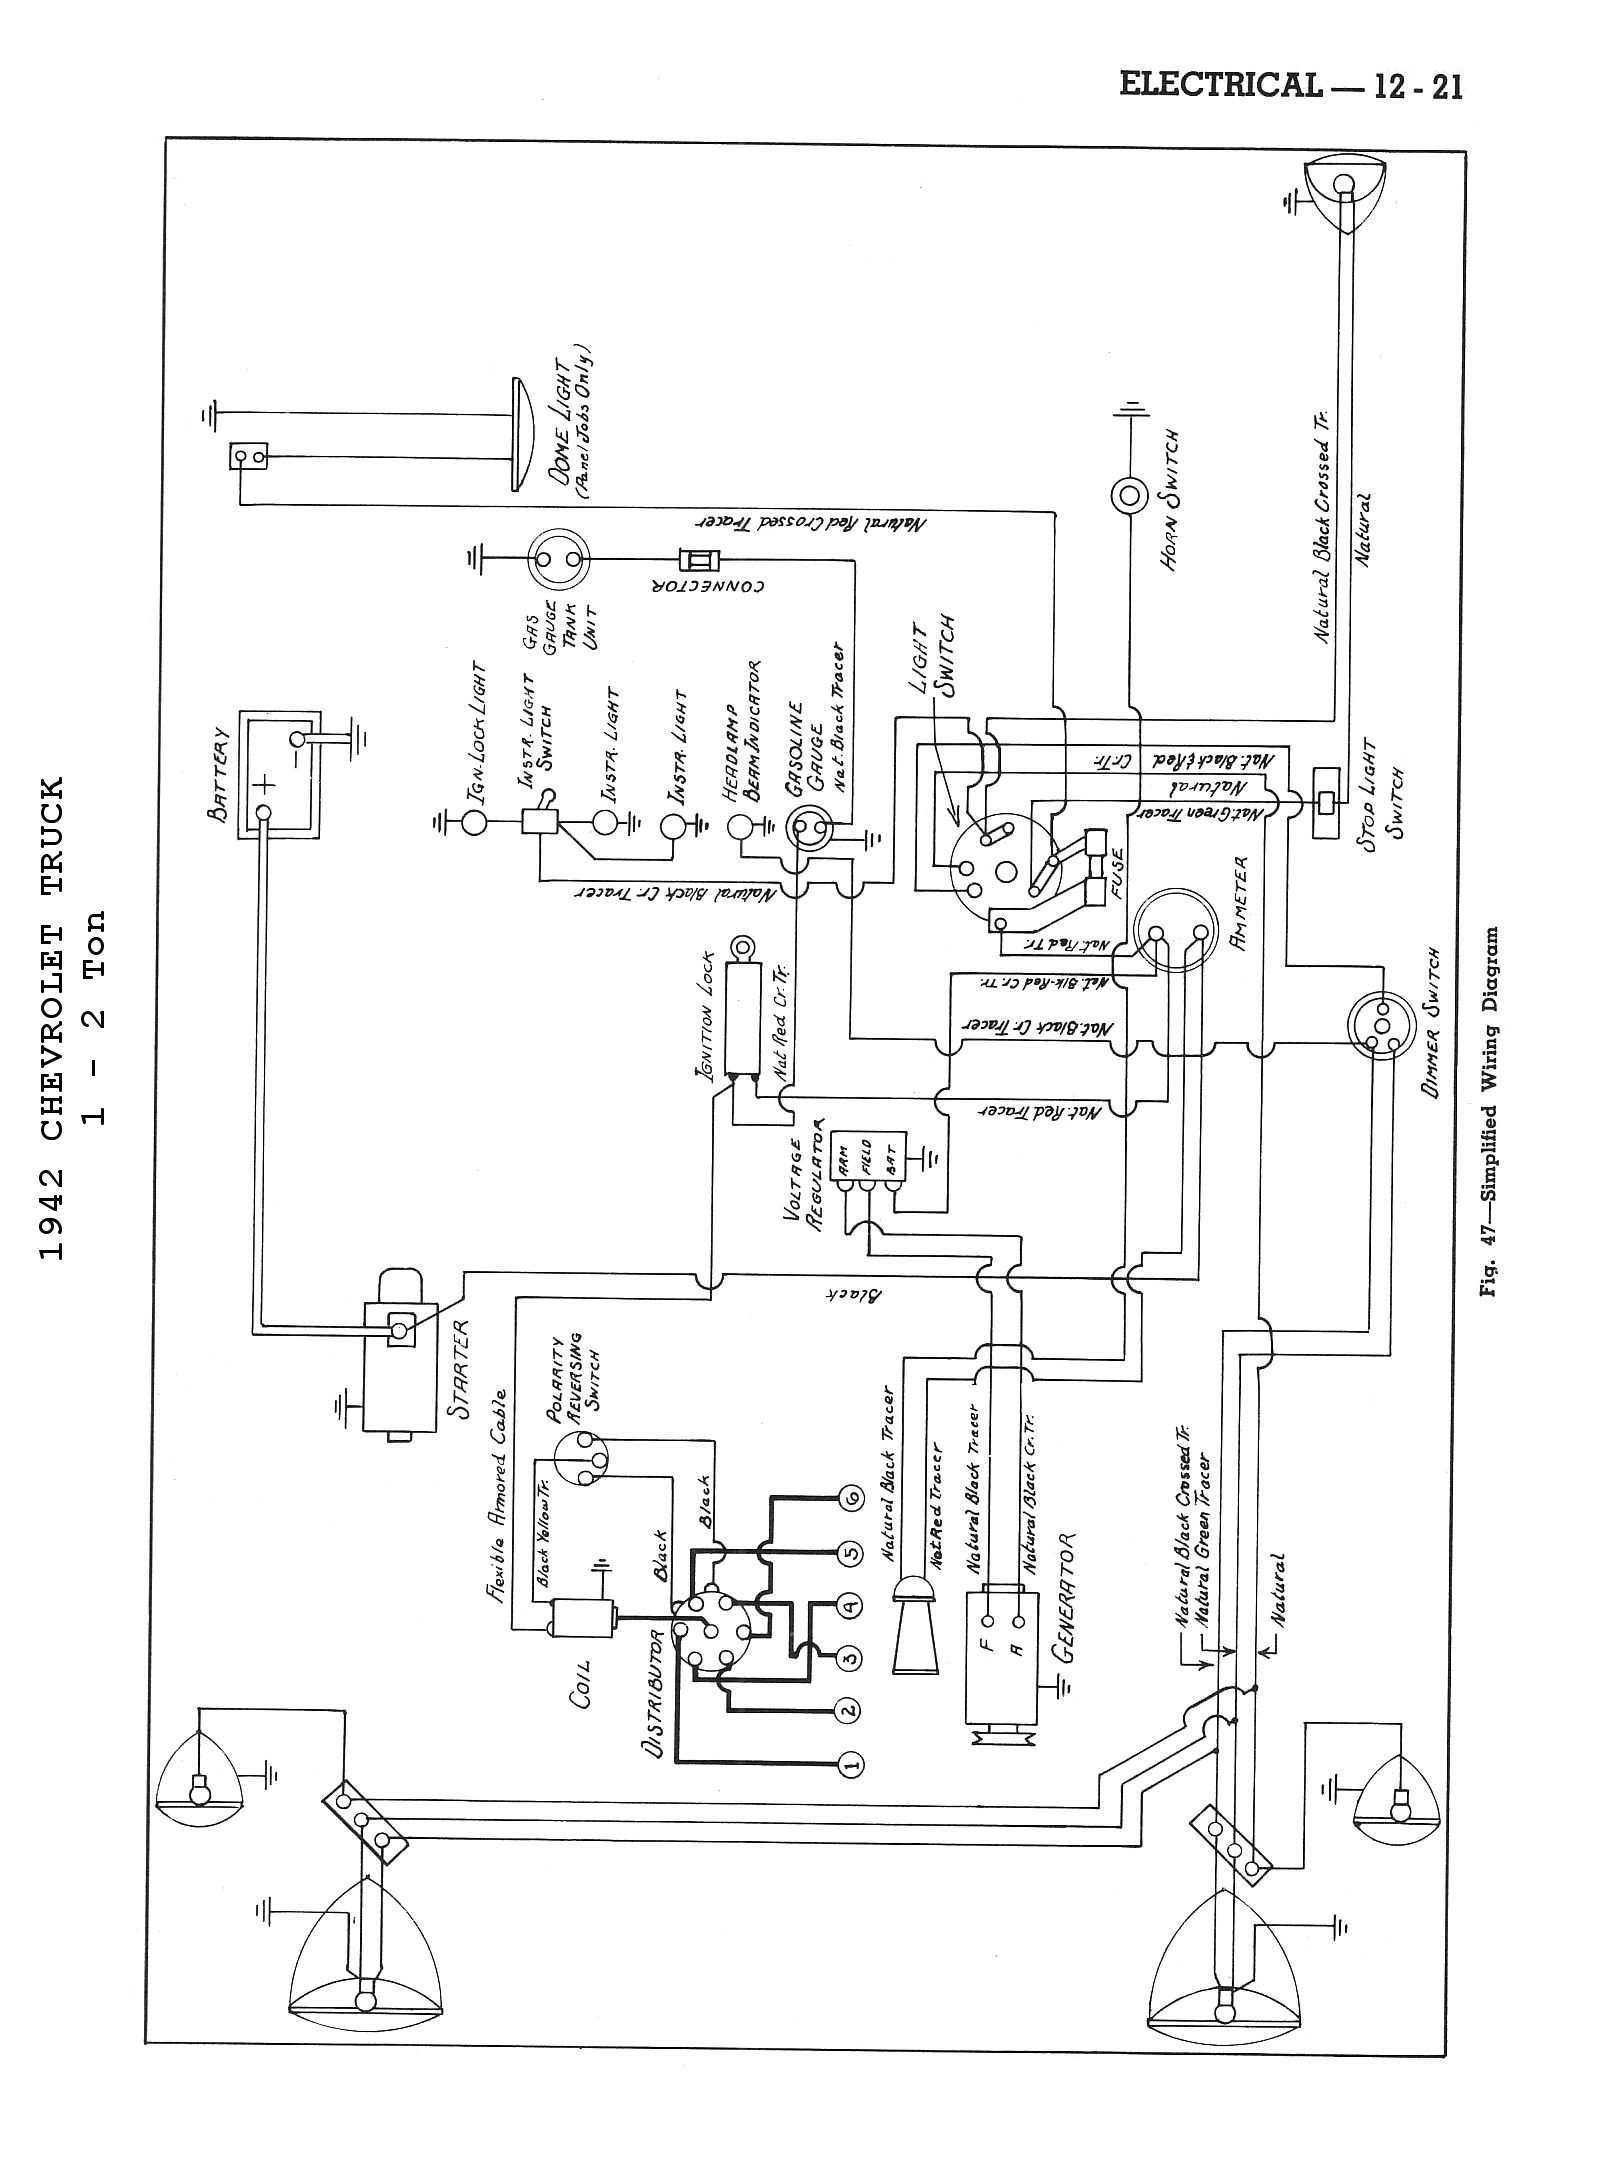 1972 c10 tail light wiring diagram